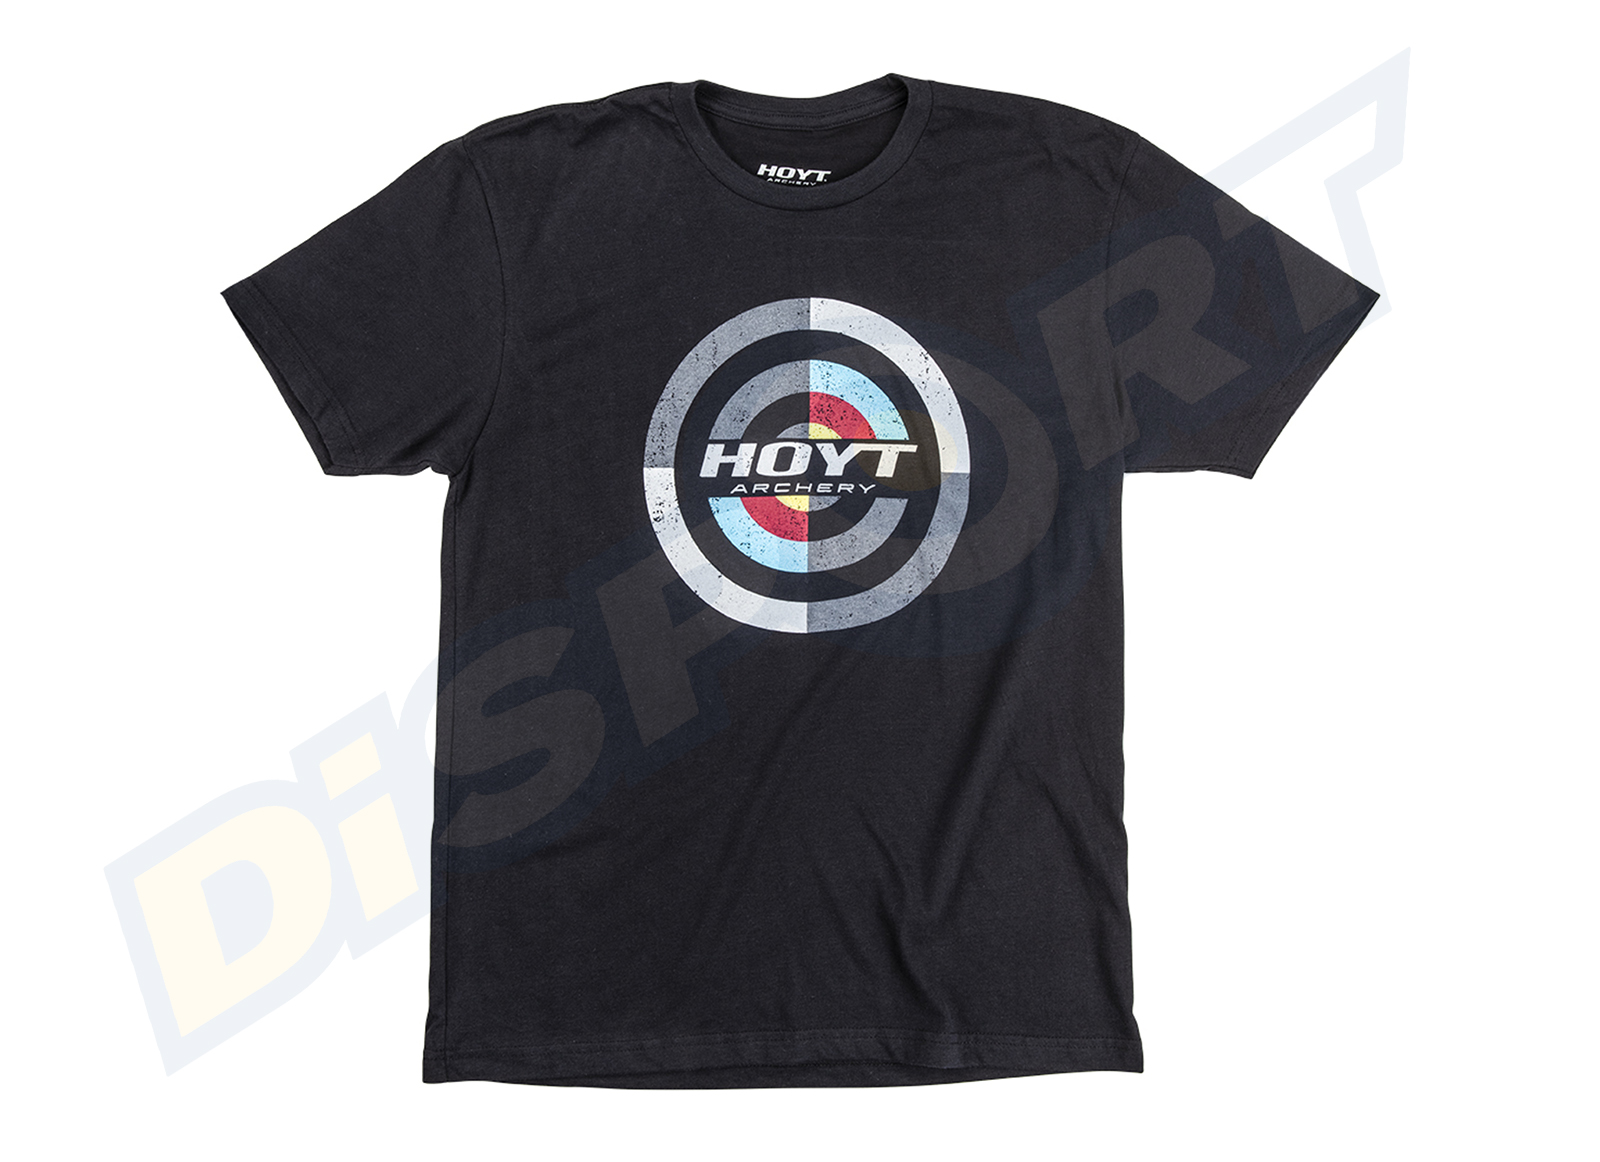 HOYT T-SHIRT UOMO X COUNT HOYT